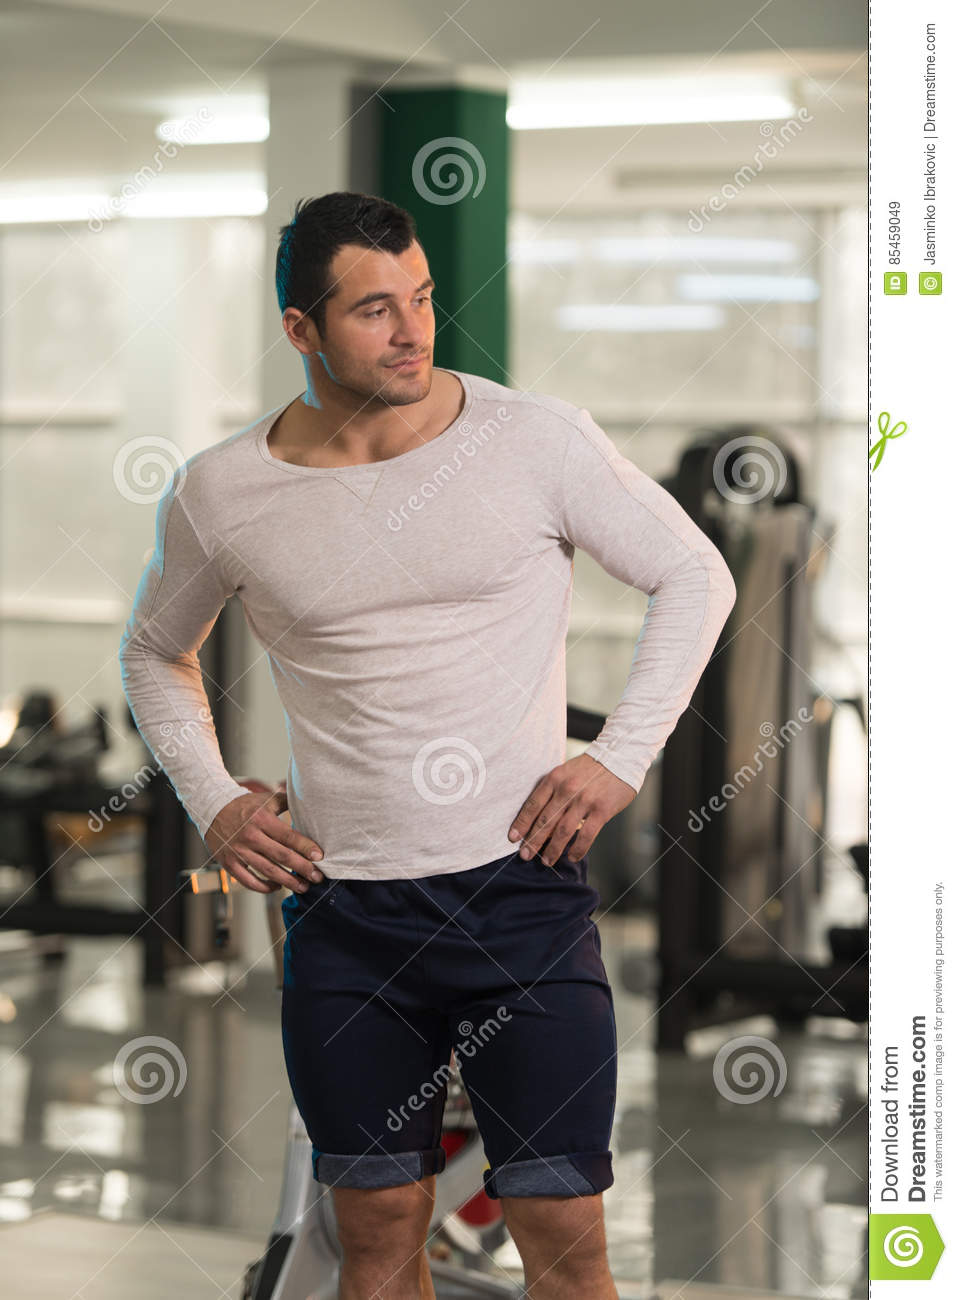 Strong Man In White T Shirt Background Gym Stock Photo